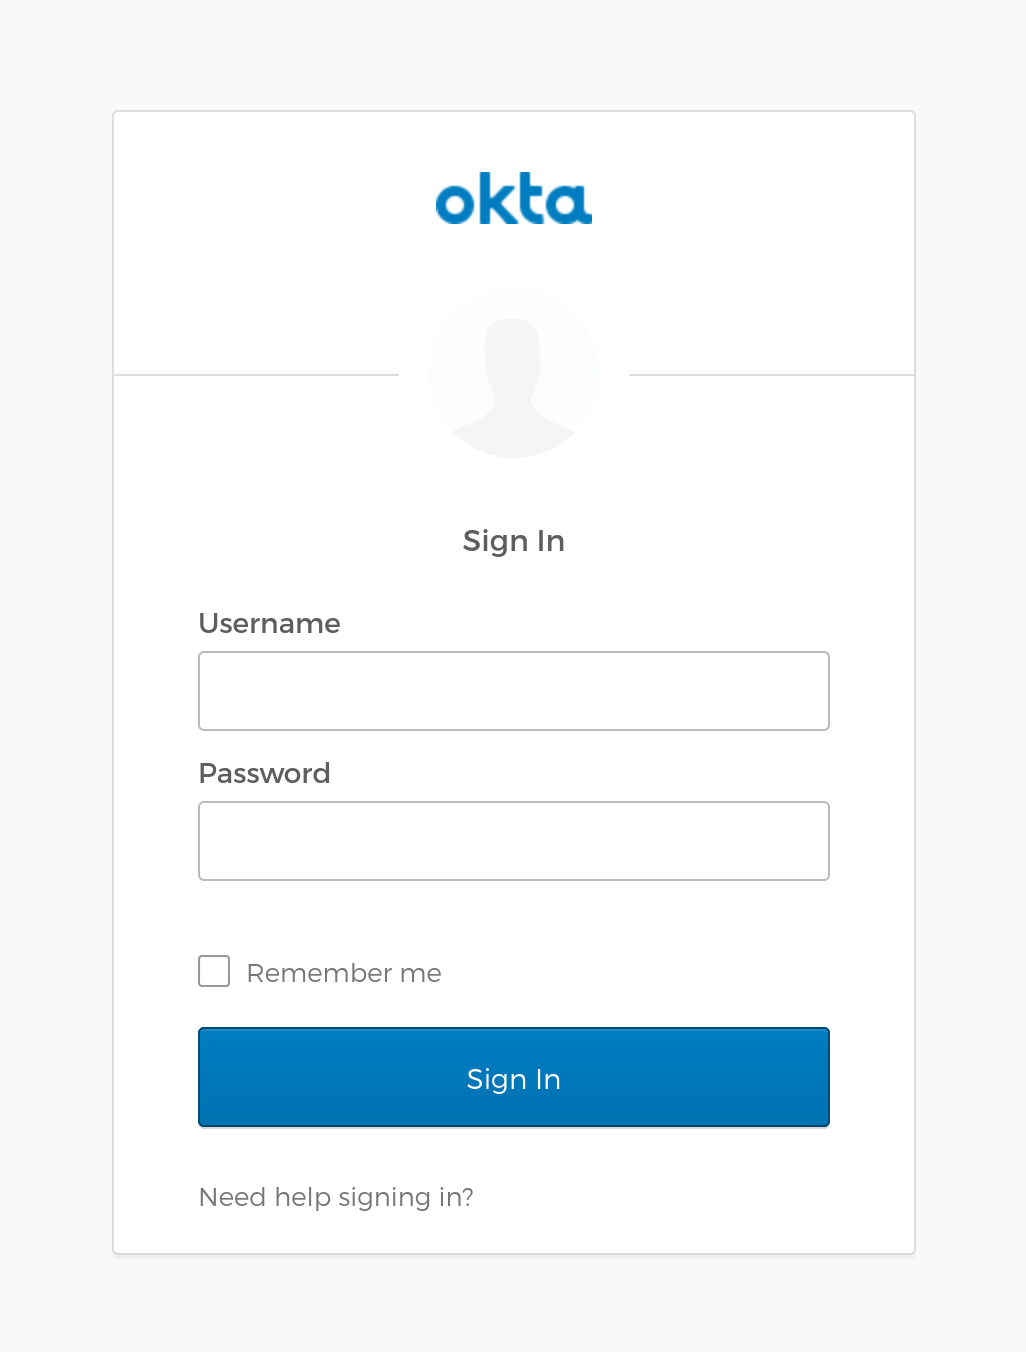 Okta sign-in screen